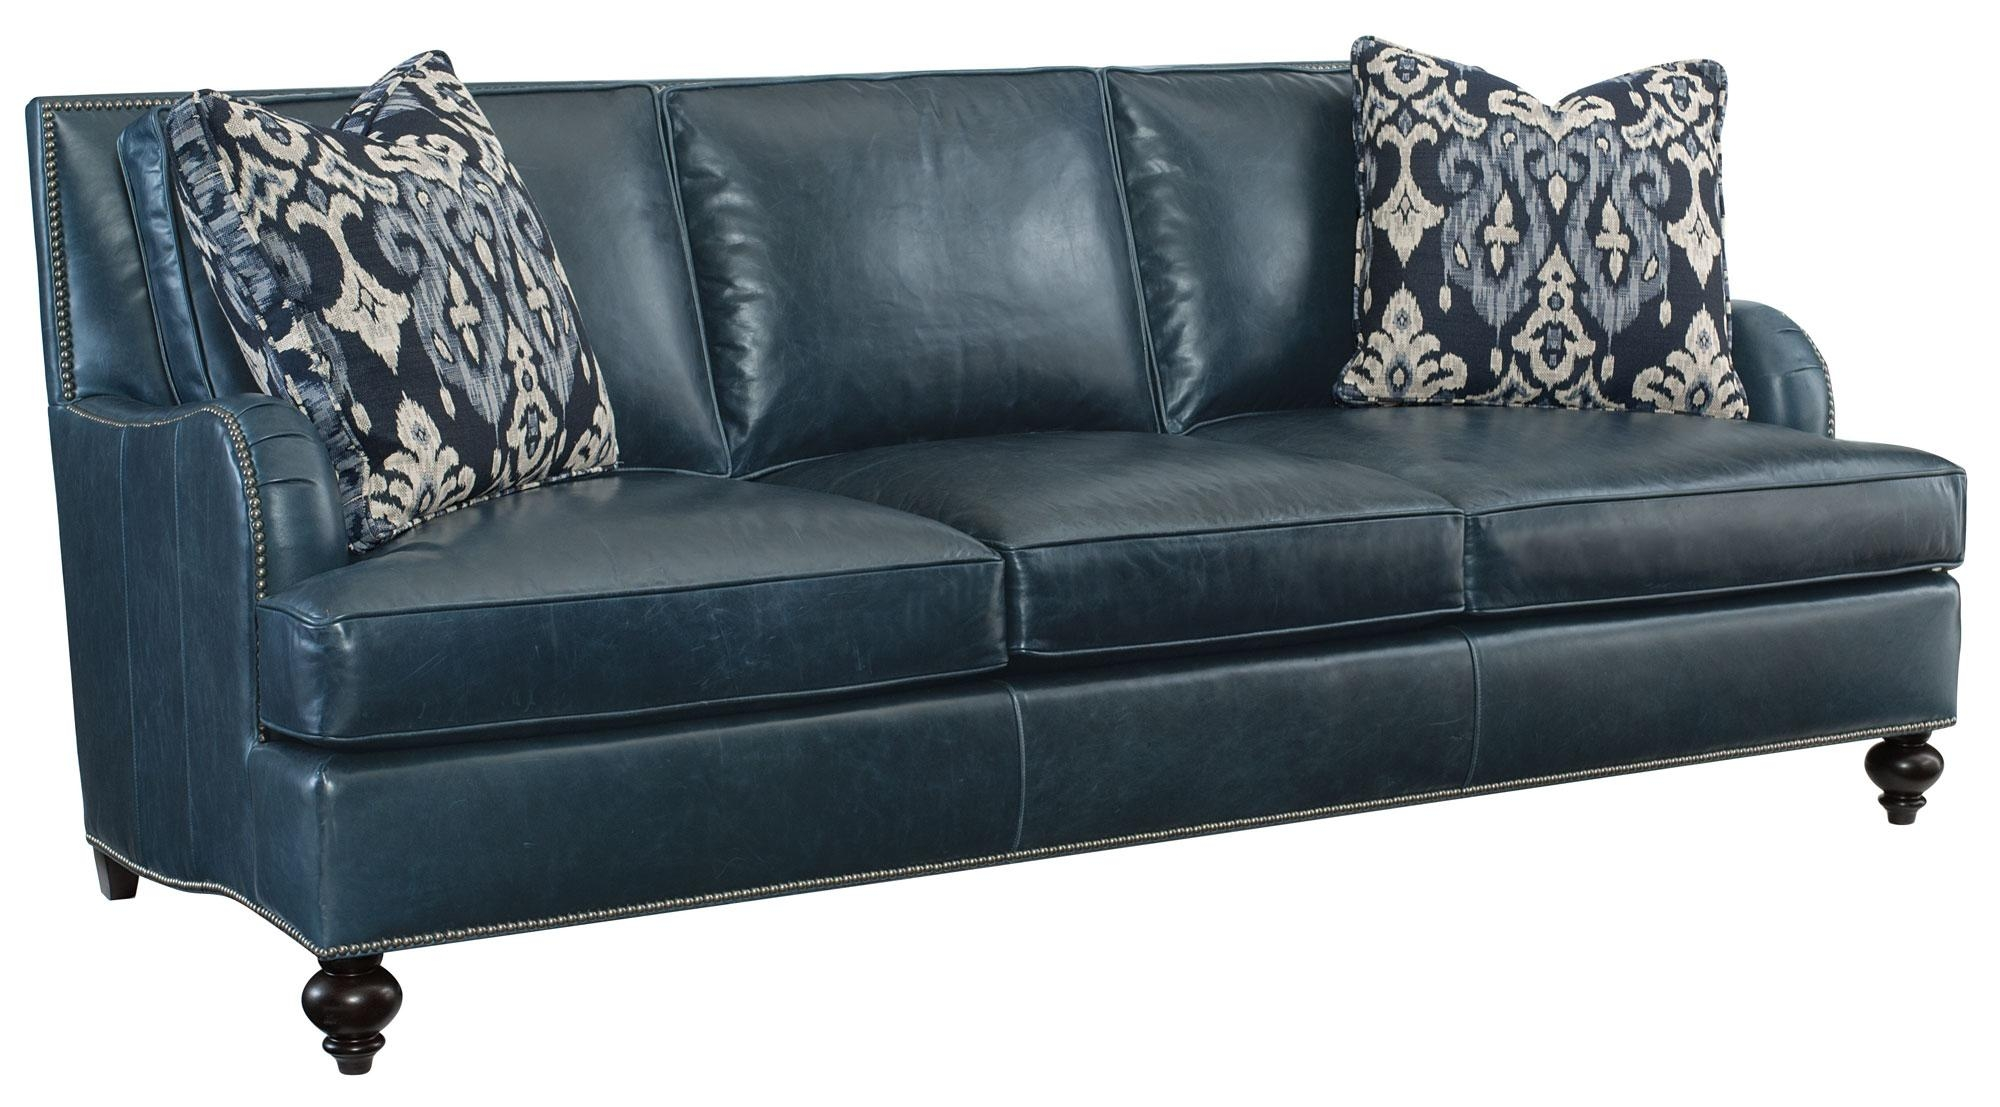 Bernhardt Leather Sofa | Winda 7 Furniture For Foster Leather Sofas (View 6 of 20)